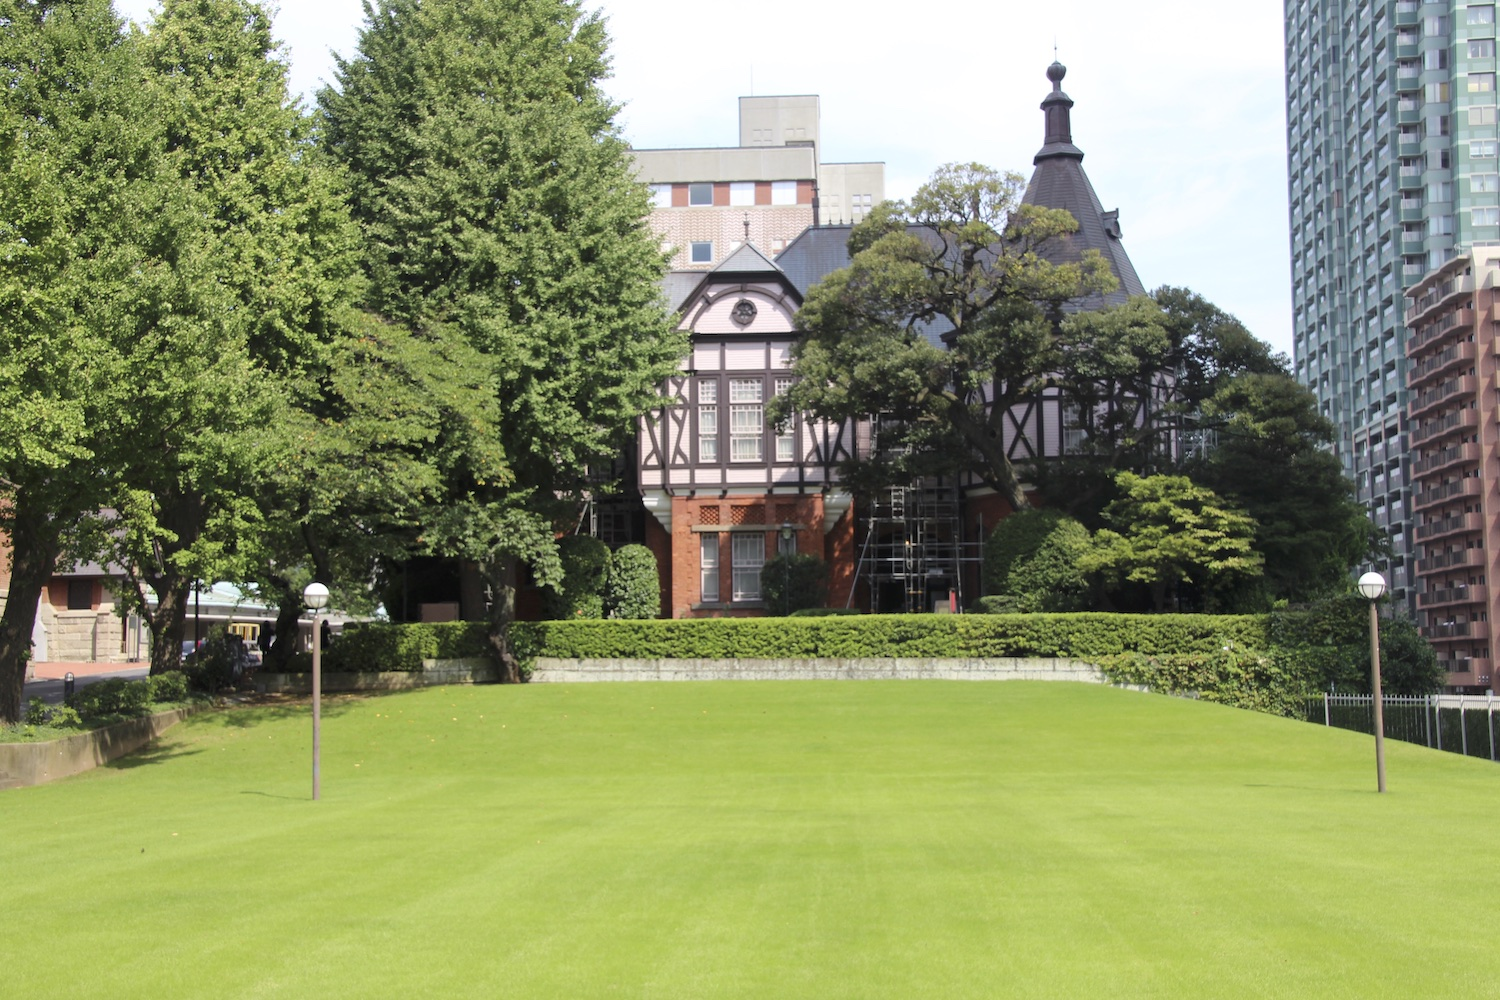 Meiji Gakuin's Memorial Hall (明治学院記念館) was built in 1890.